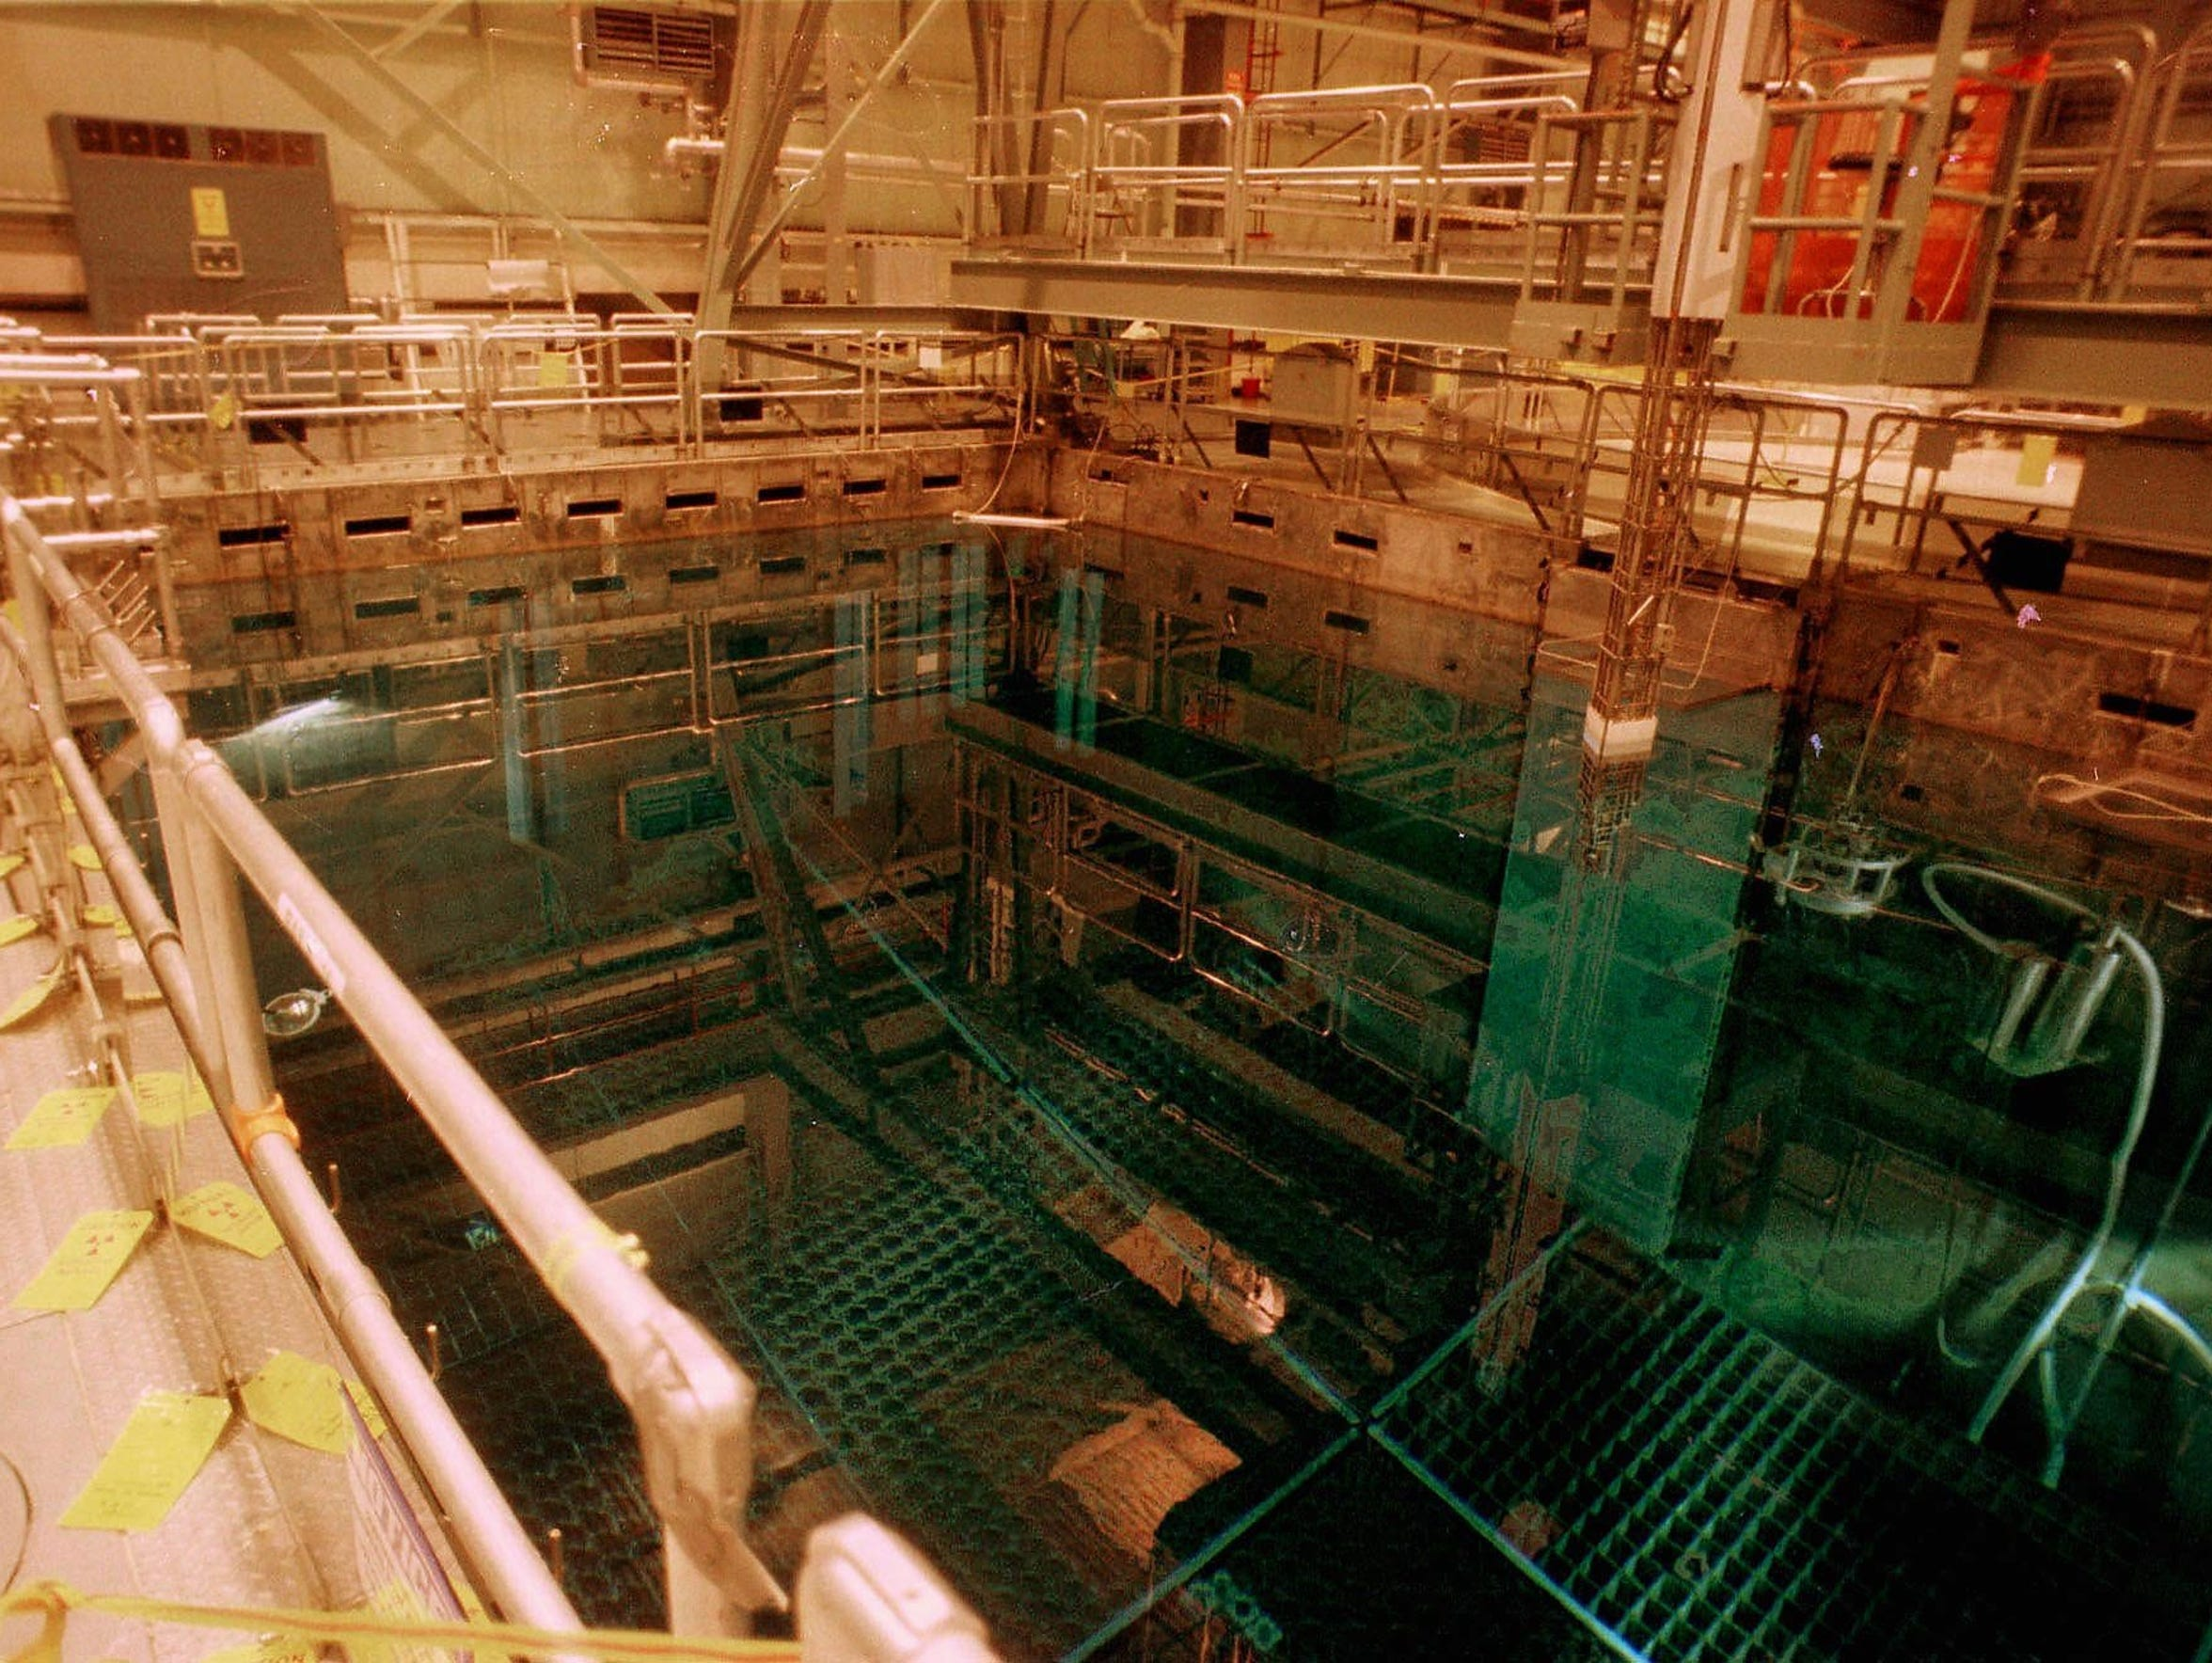 A nuclear fuel storage pool is seen in this December